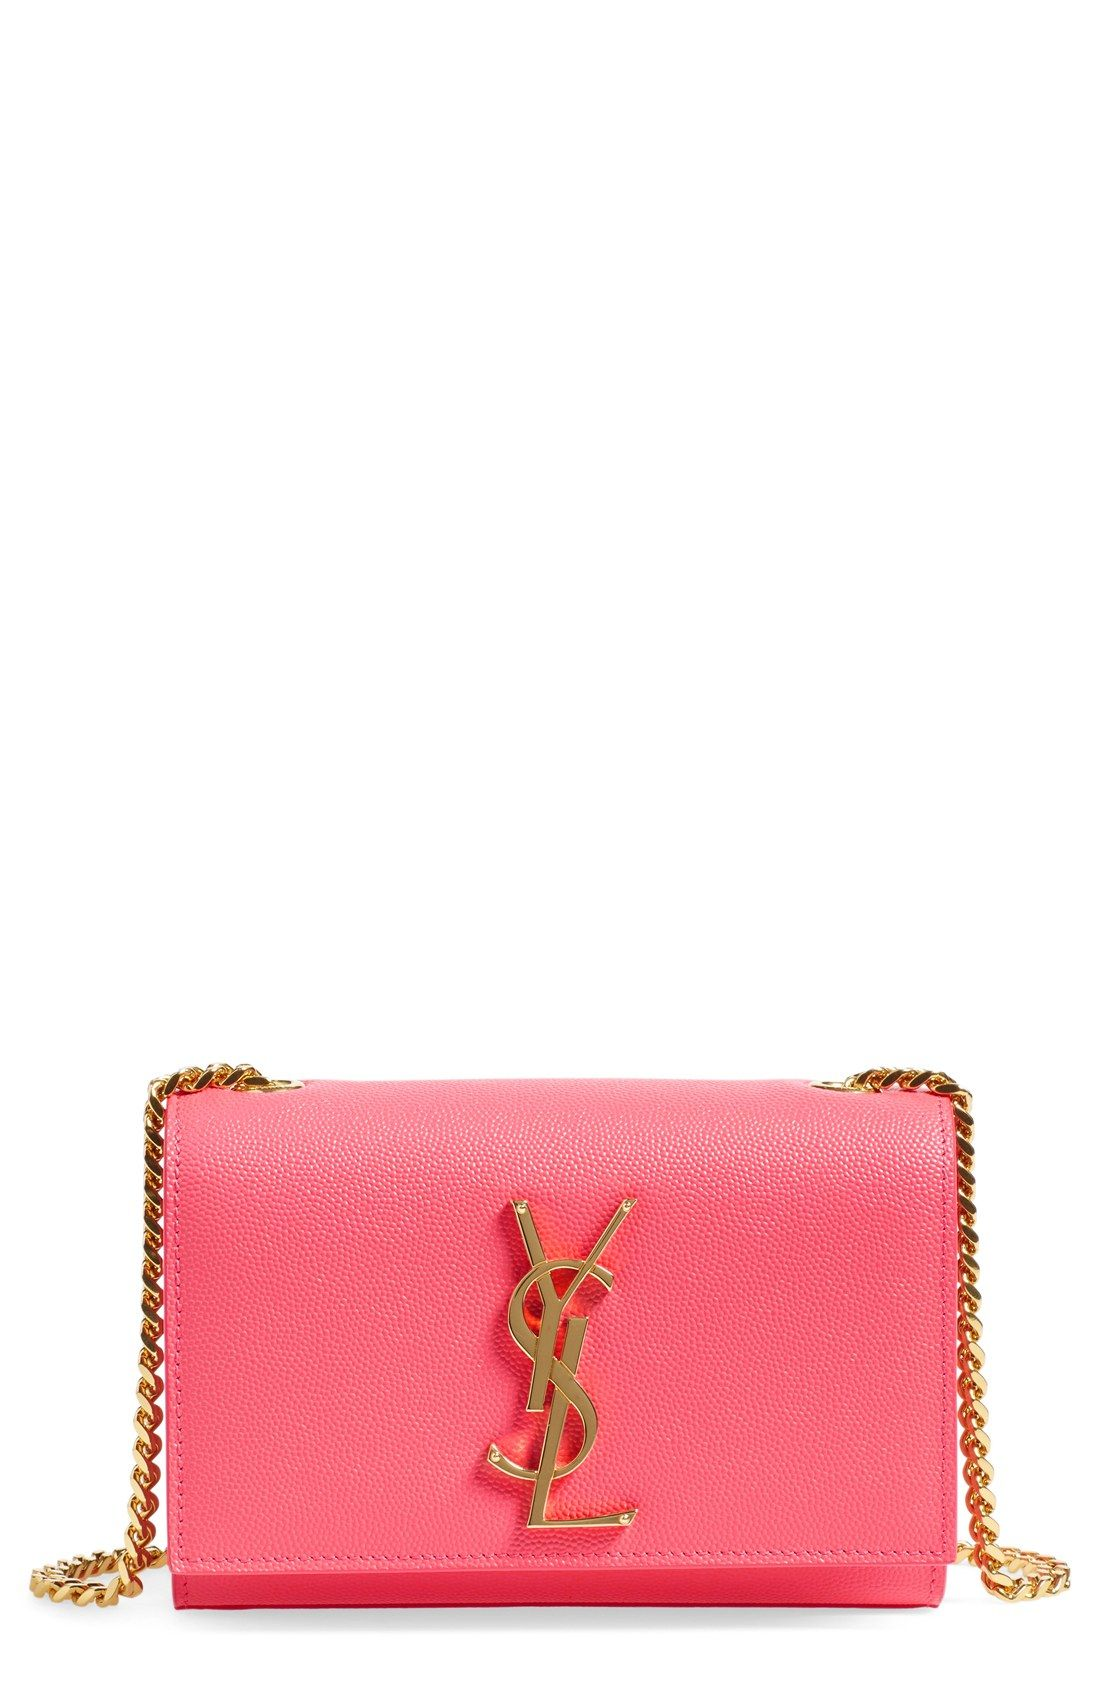 This Bright Pink Crossbody With Gold Chain Is Definitely At The Top Of Wish List Baby Bagsbeautiful Handbagsdesigner